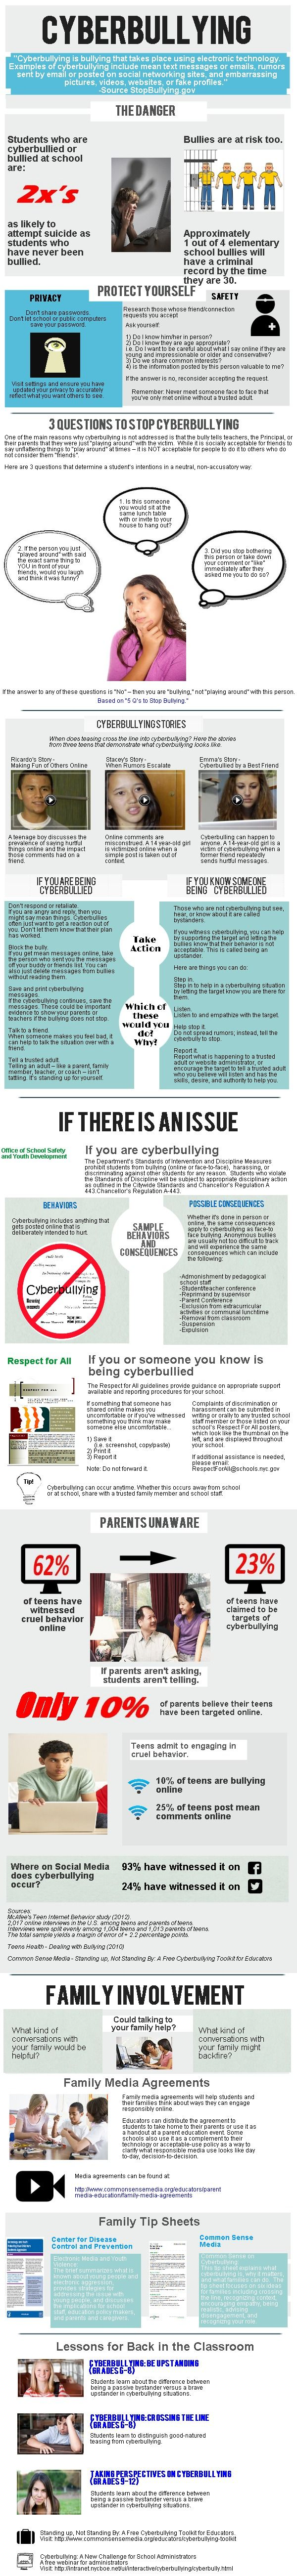 Cyberbullying | #infographic made in @Piktochart